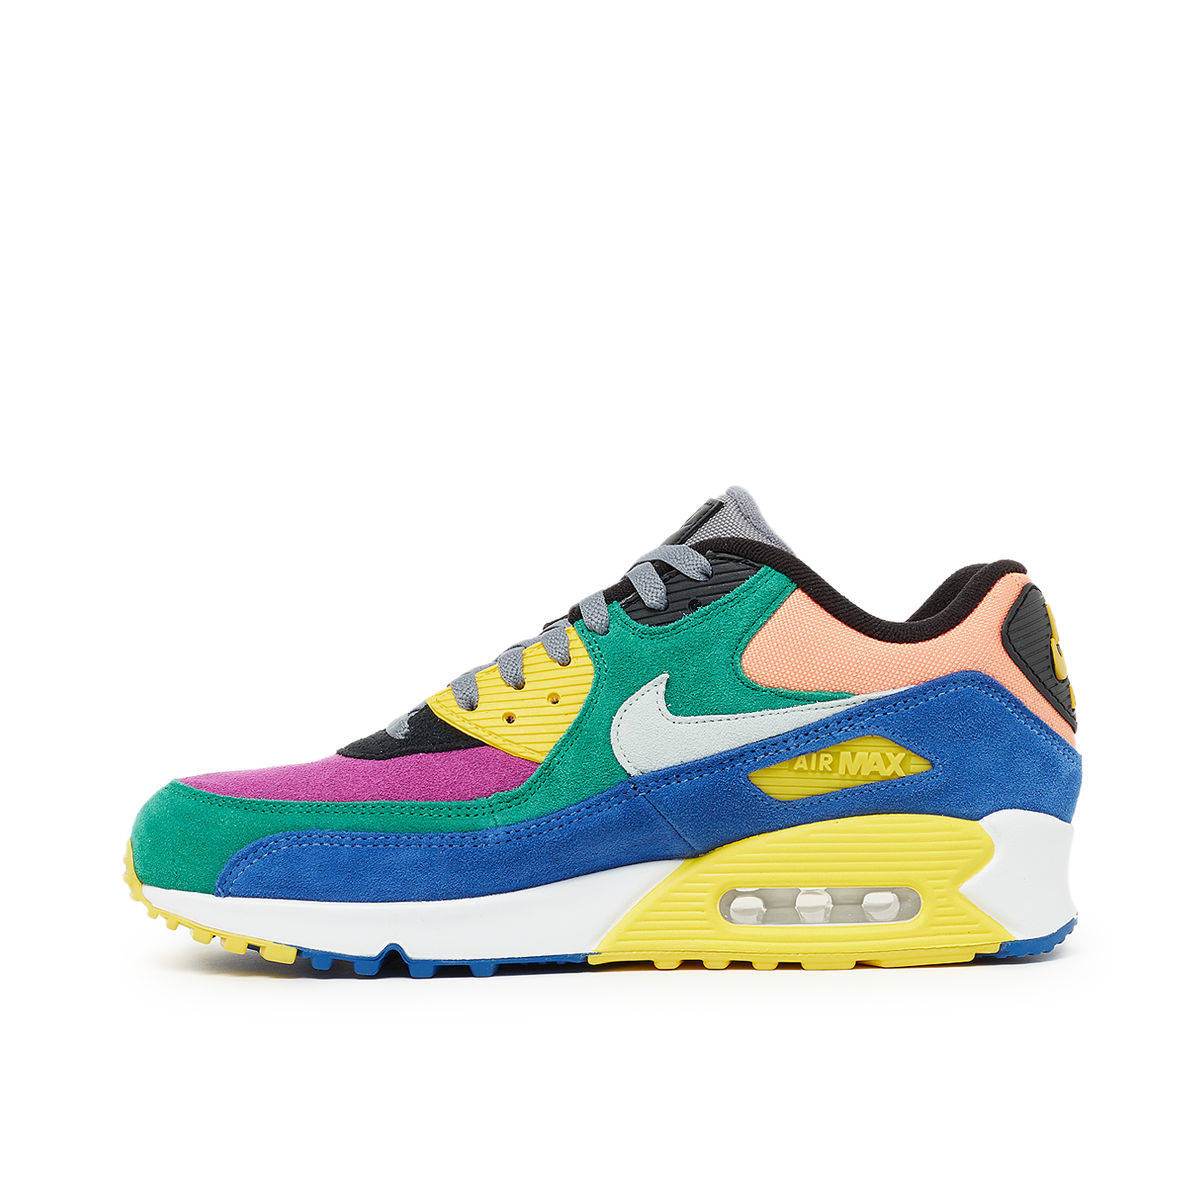 Nike Air Max 90 QS in bunt CD0917 300 | everysize